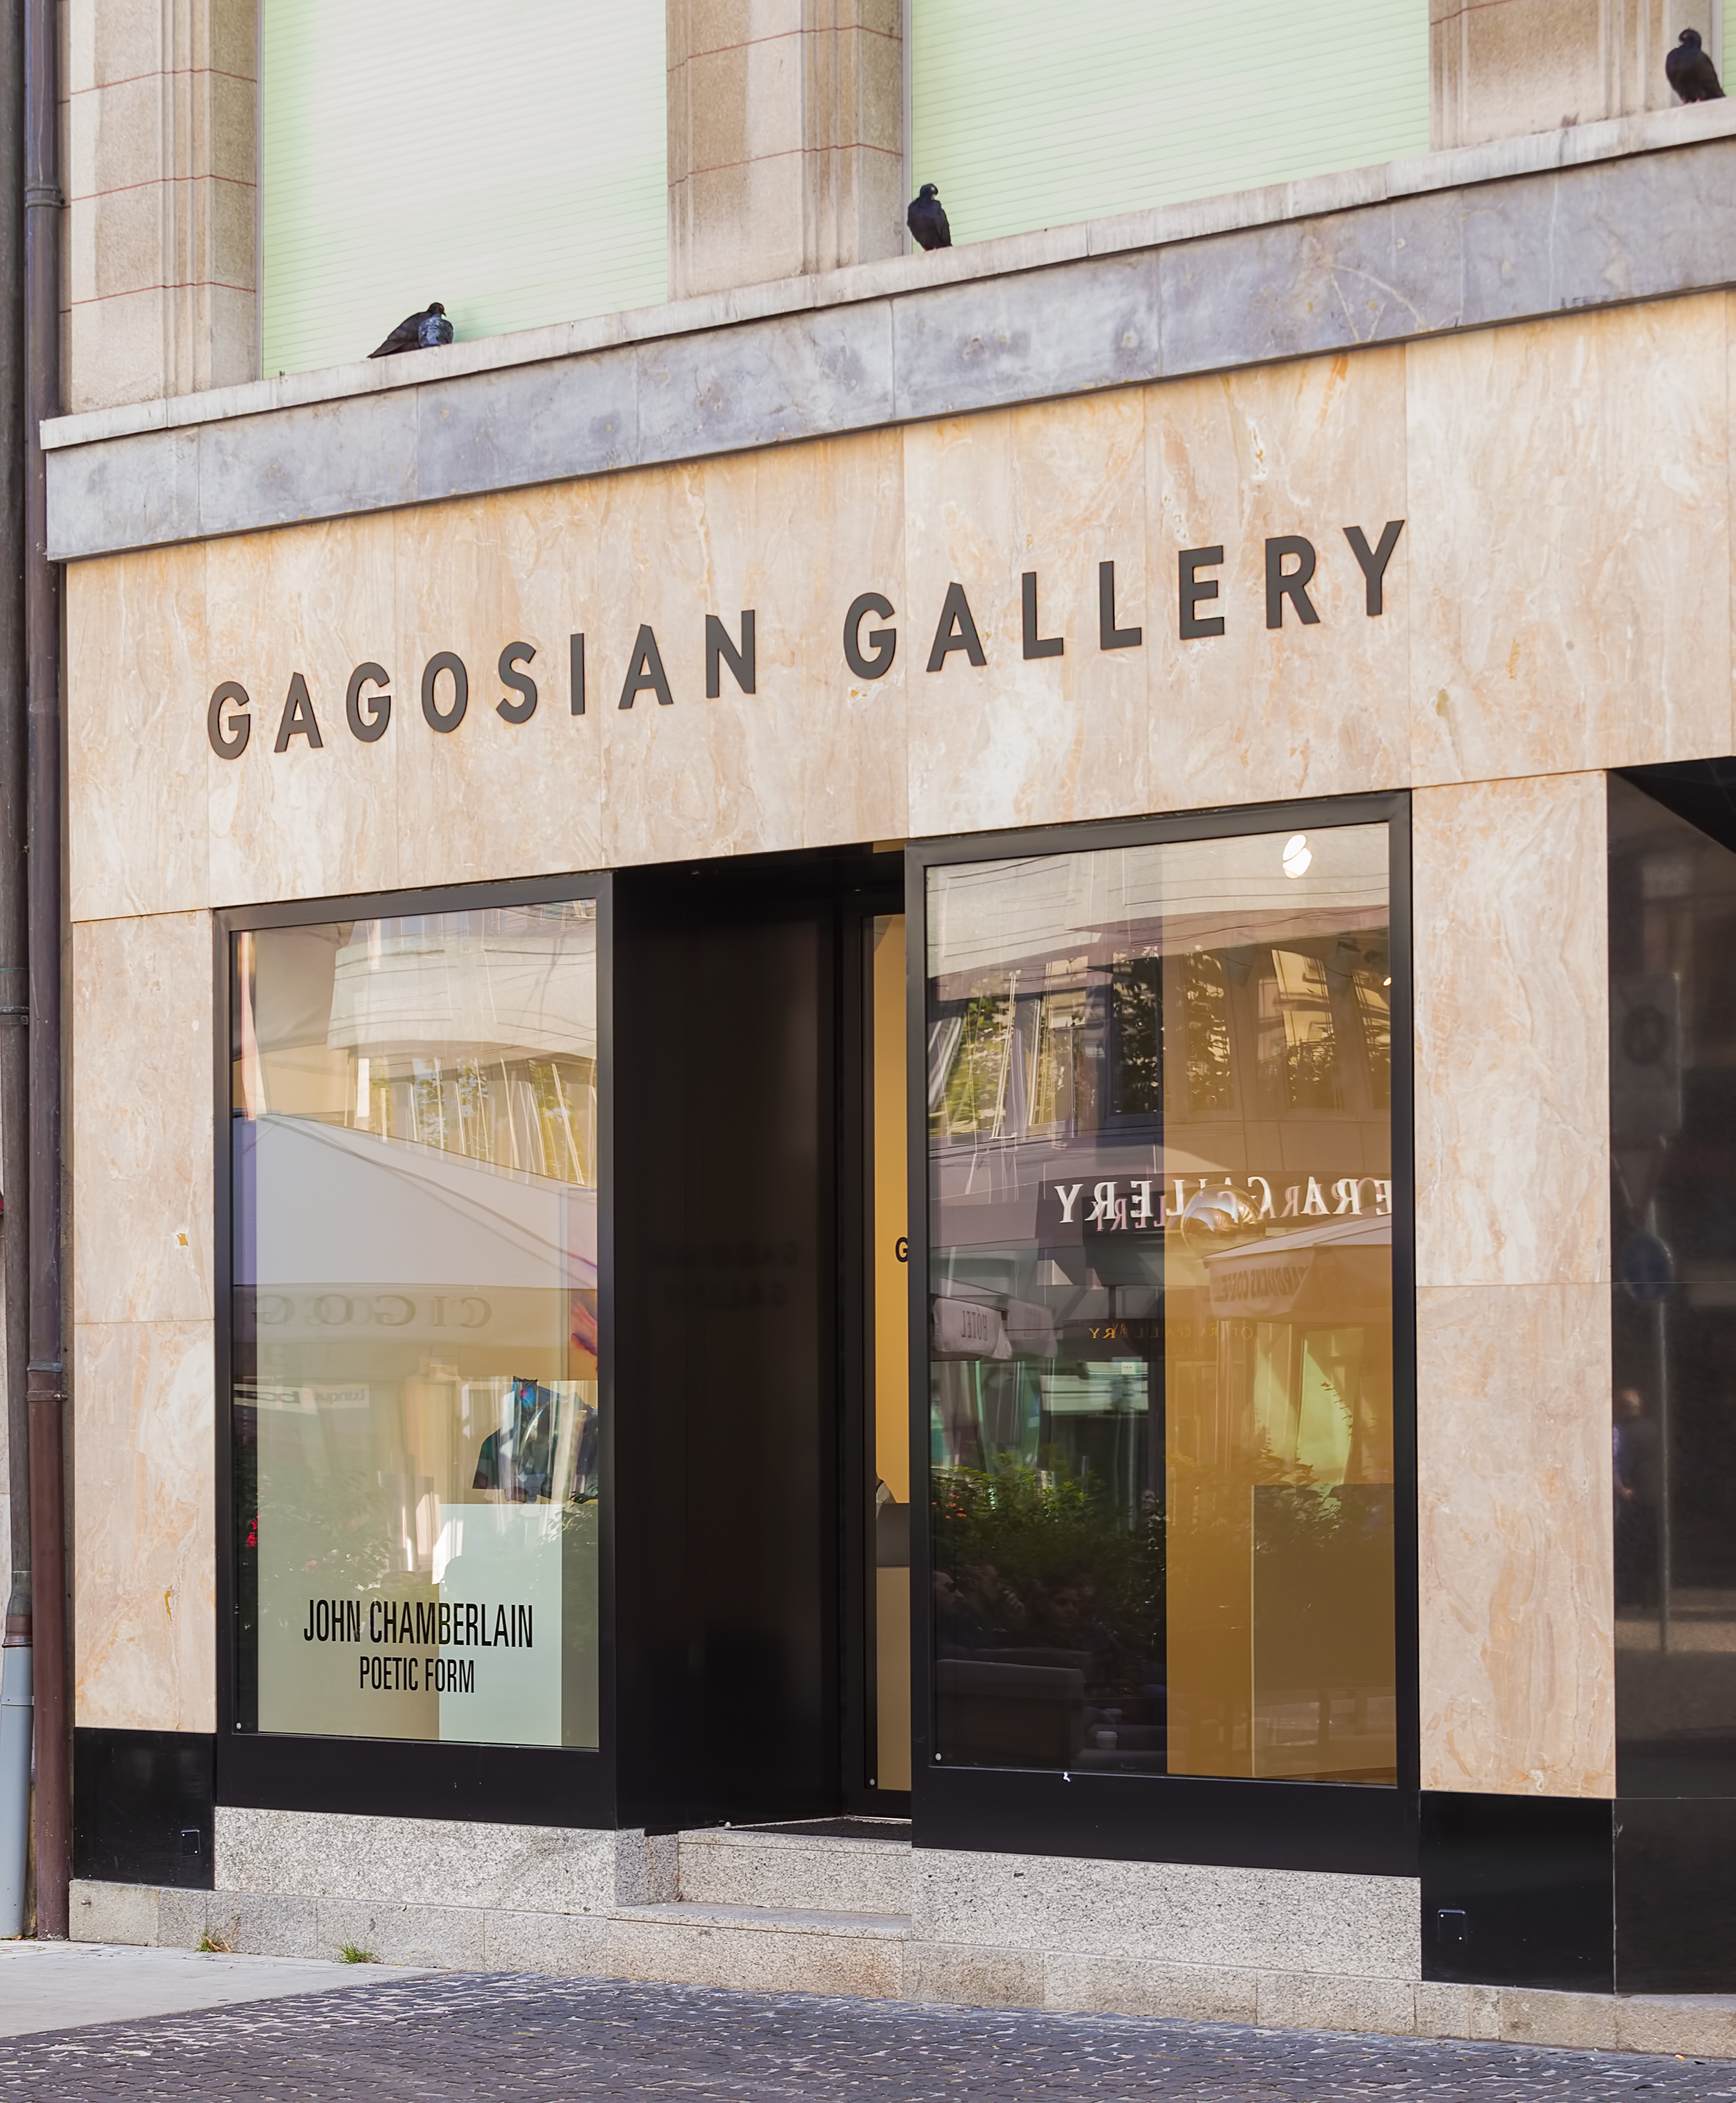 Gagosian to Start Advisory Firm With Laura Paulson as Head, Taps Andrew Fabricant as Gallery's Chief Operating Officer